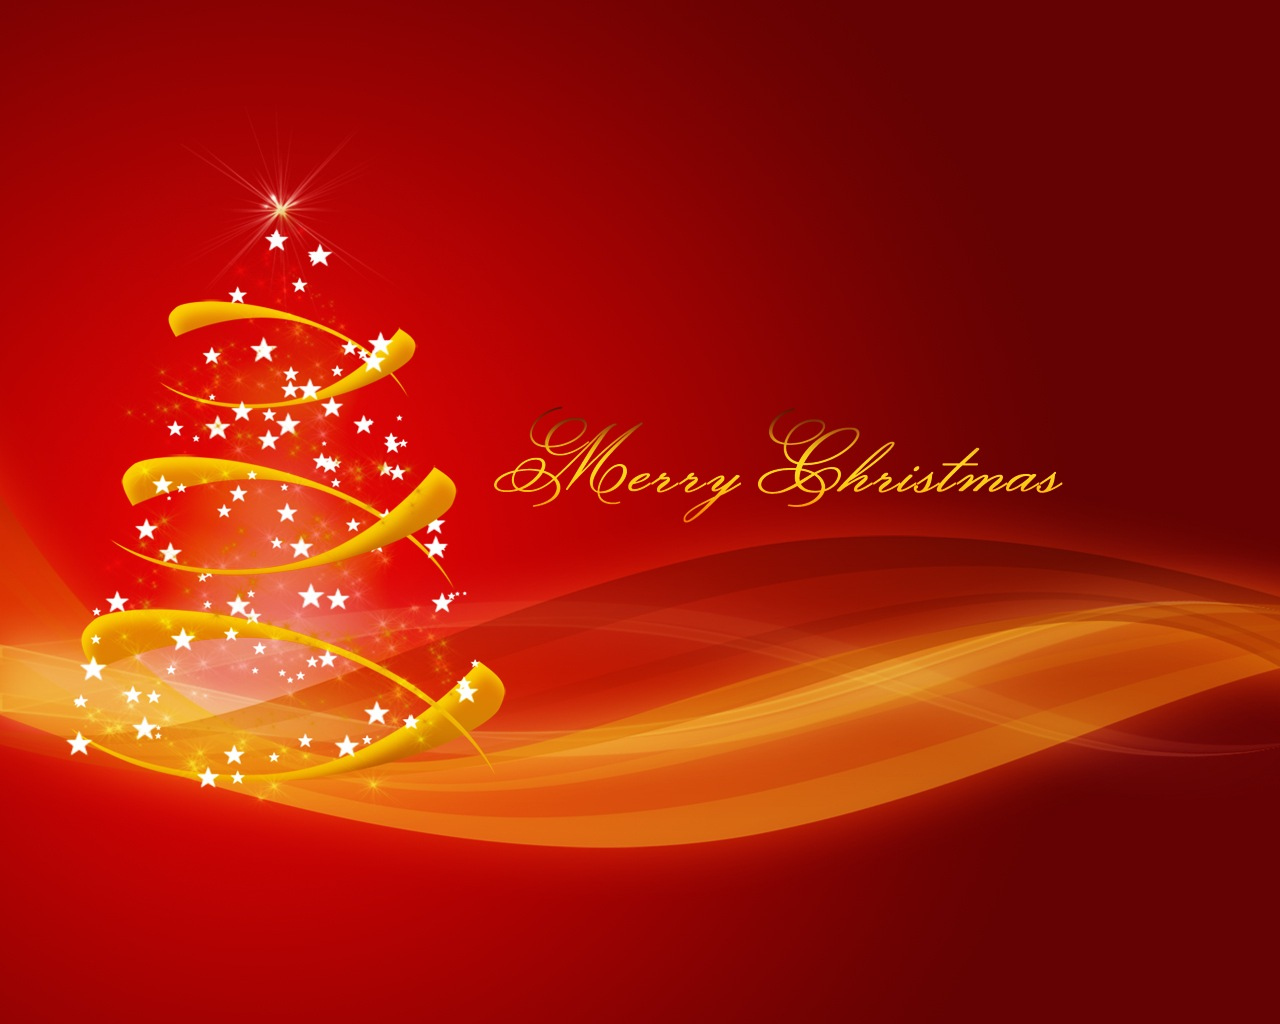 Free Christmas Background Tiles Free Web Design Tools And Resources